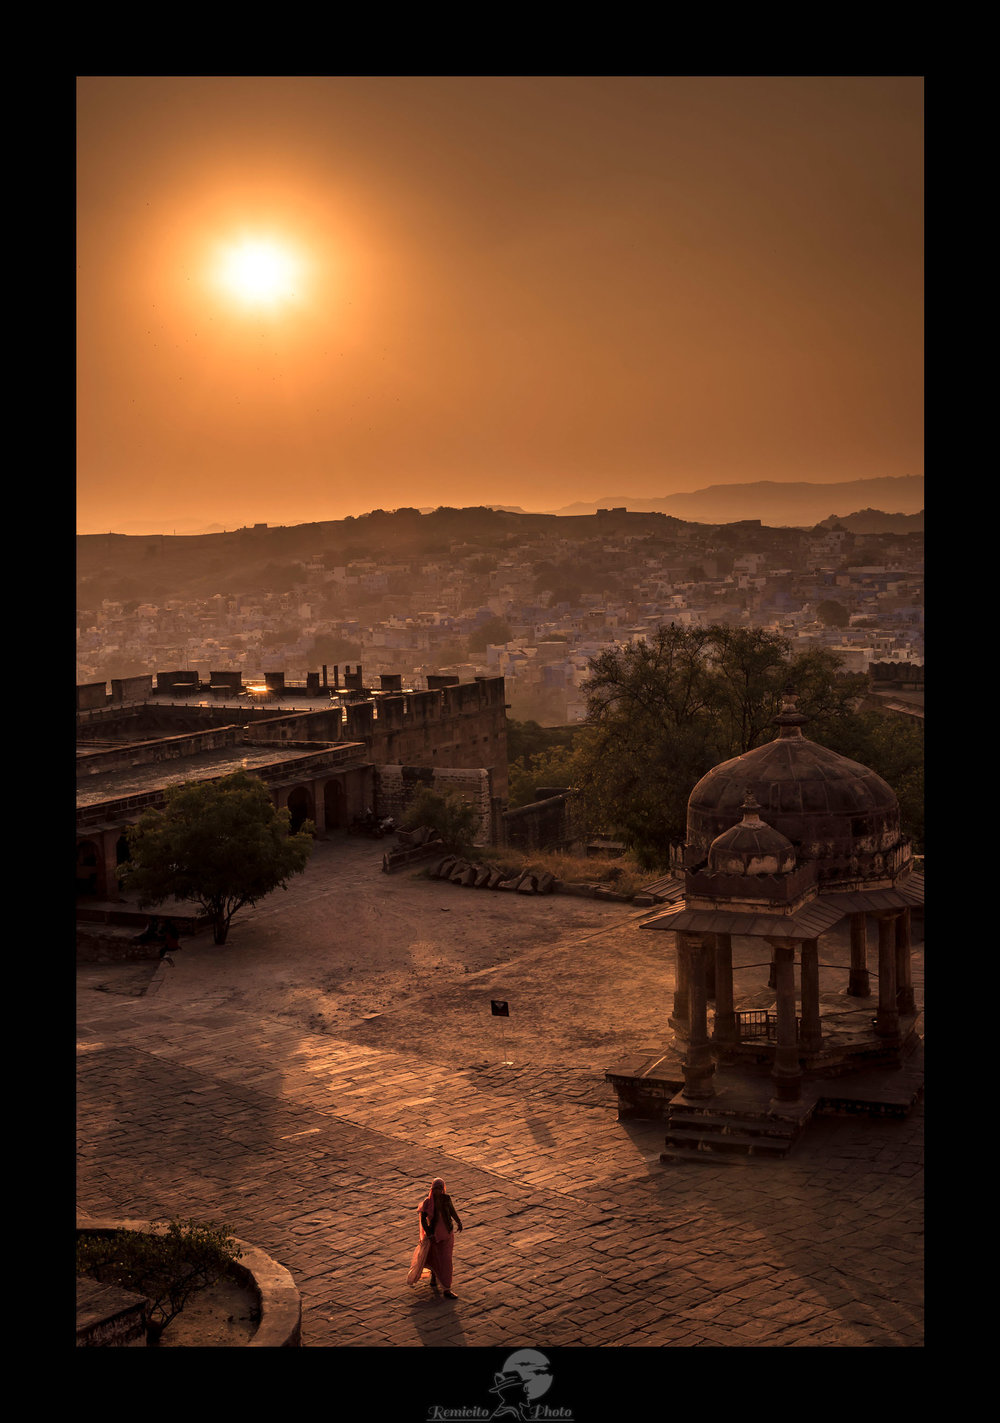 remicito photo, image du jour, photo du jour, photo of the day, coucher de soleil, photo coucher de soleil, photographe français, french photographer, fotografo francés, photo Jodhpur, coucher de soleil Inde, sunset India, sunset jodhpur, idée cadeau, landscape photographer, photographe de paysage, travel photography, photographe de voyage